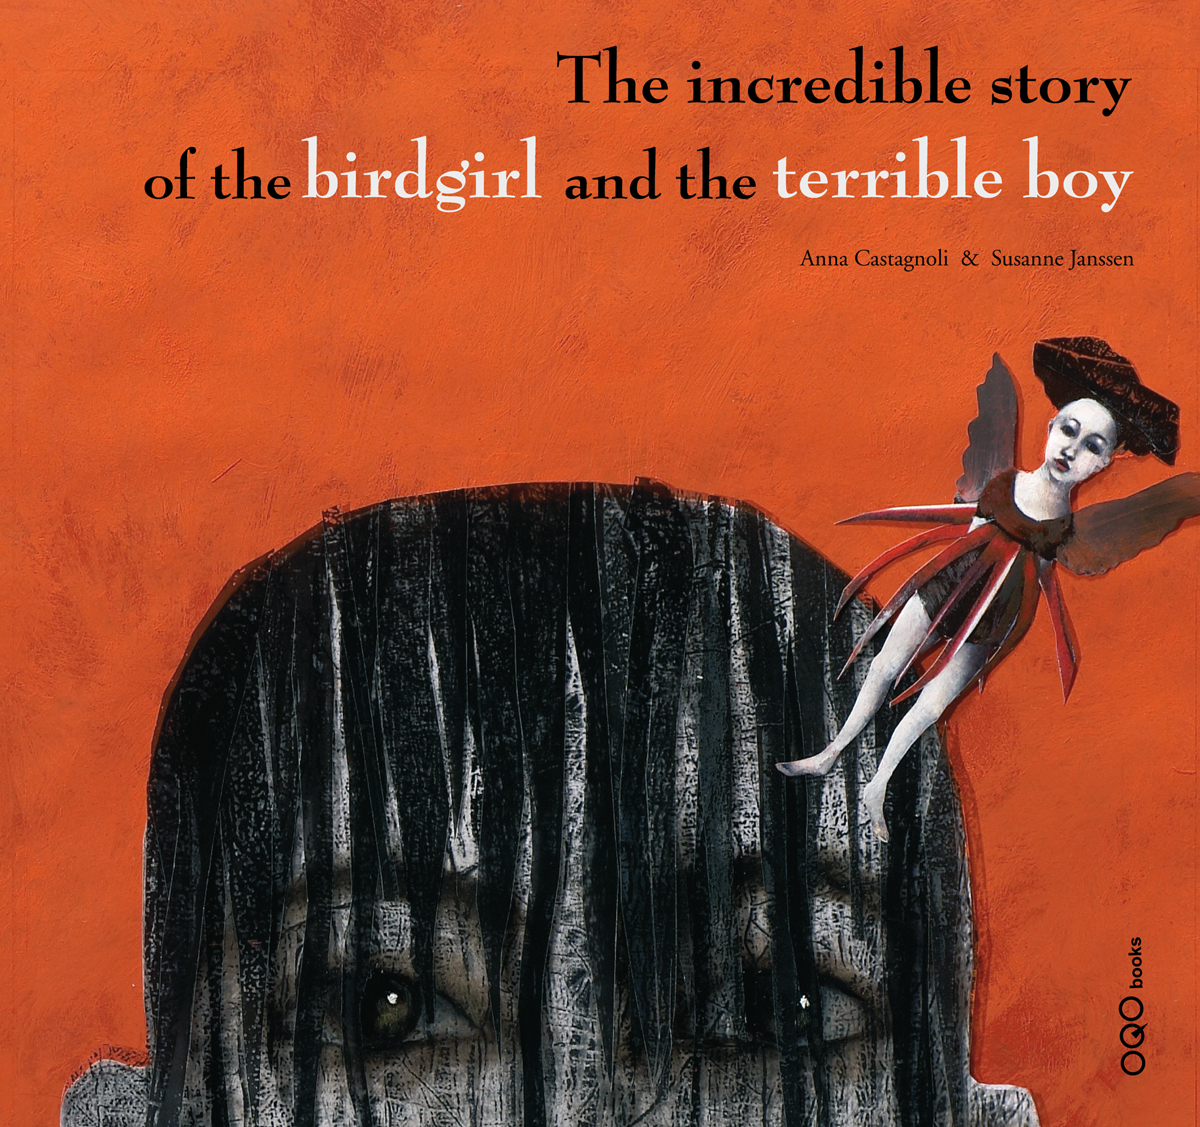 The Incredible Story of the Birdgirl and the Terrible Boy